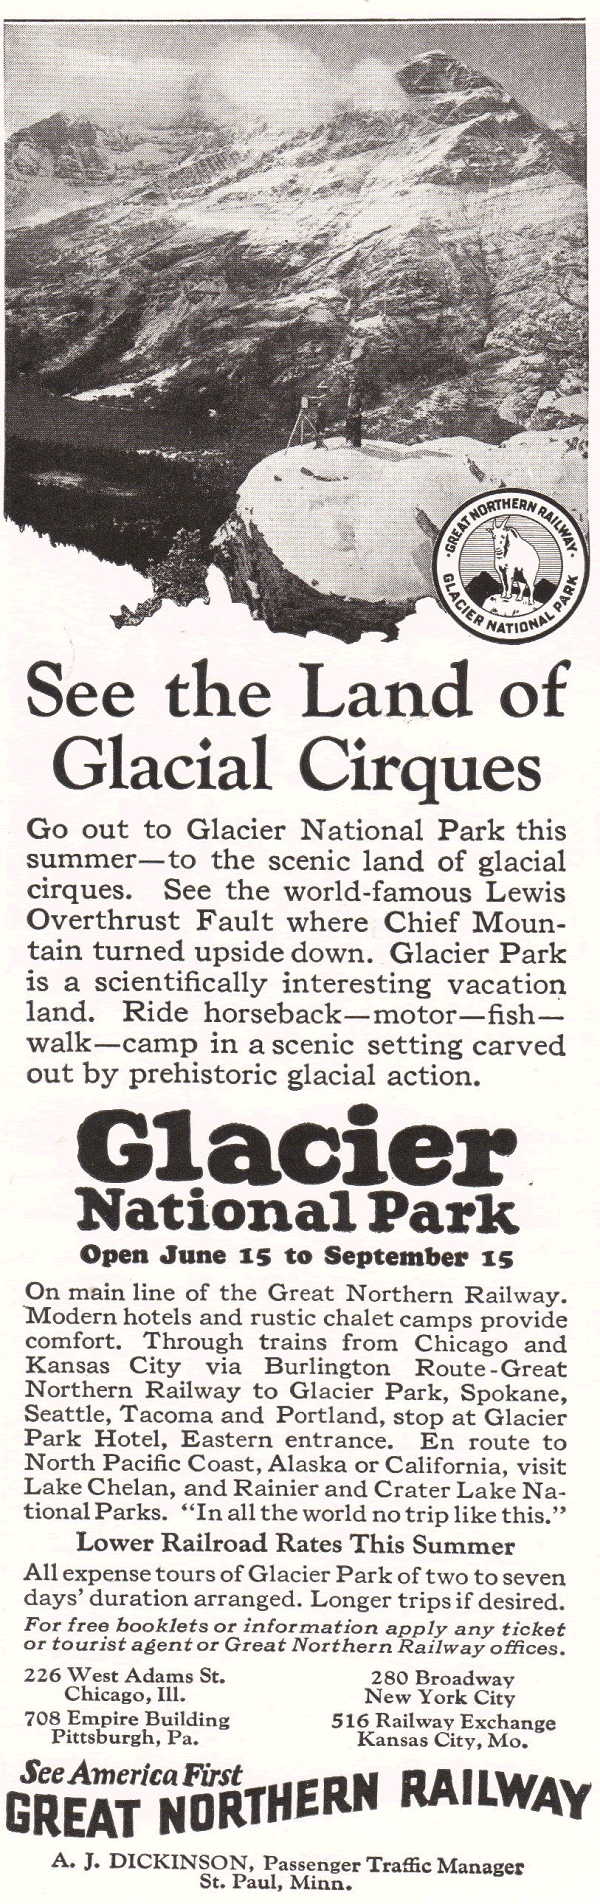 See America First: Great Northern Railway to Glacier National Park